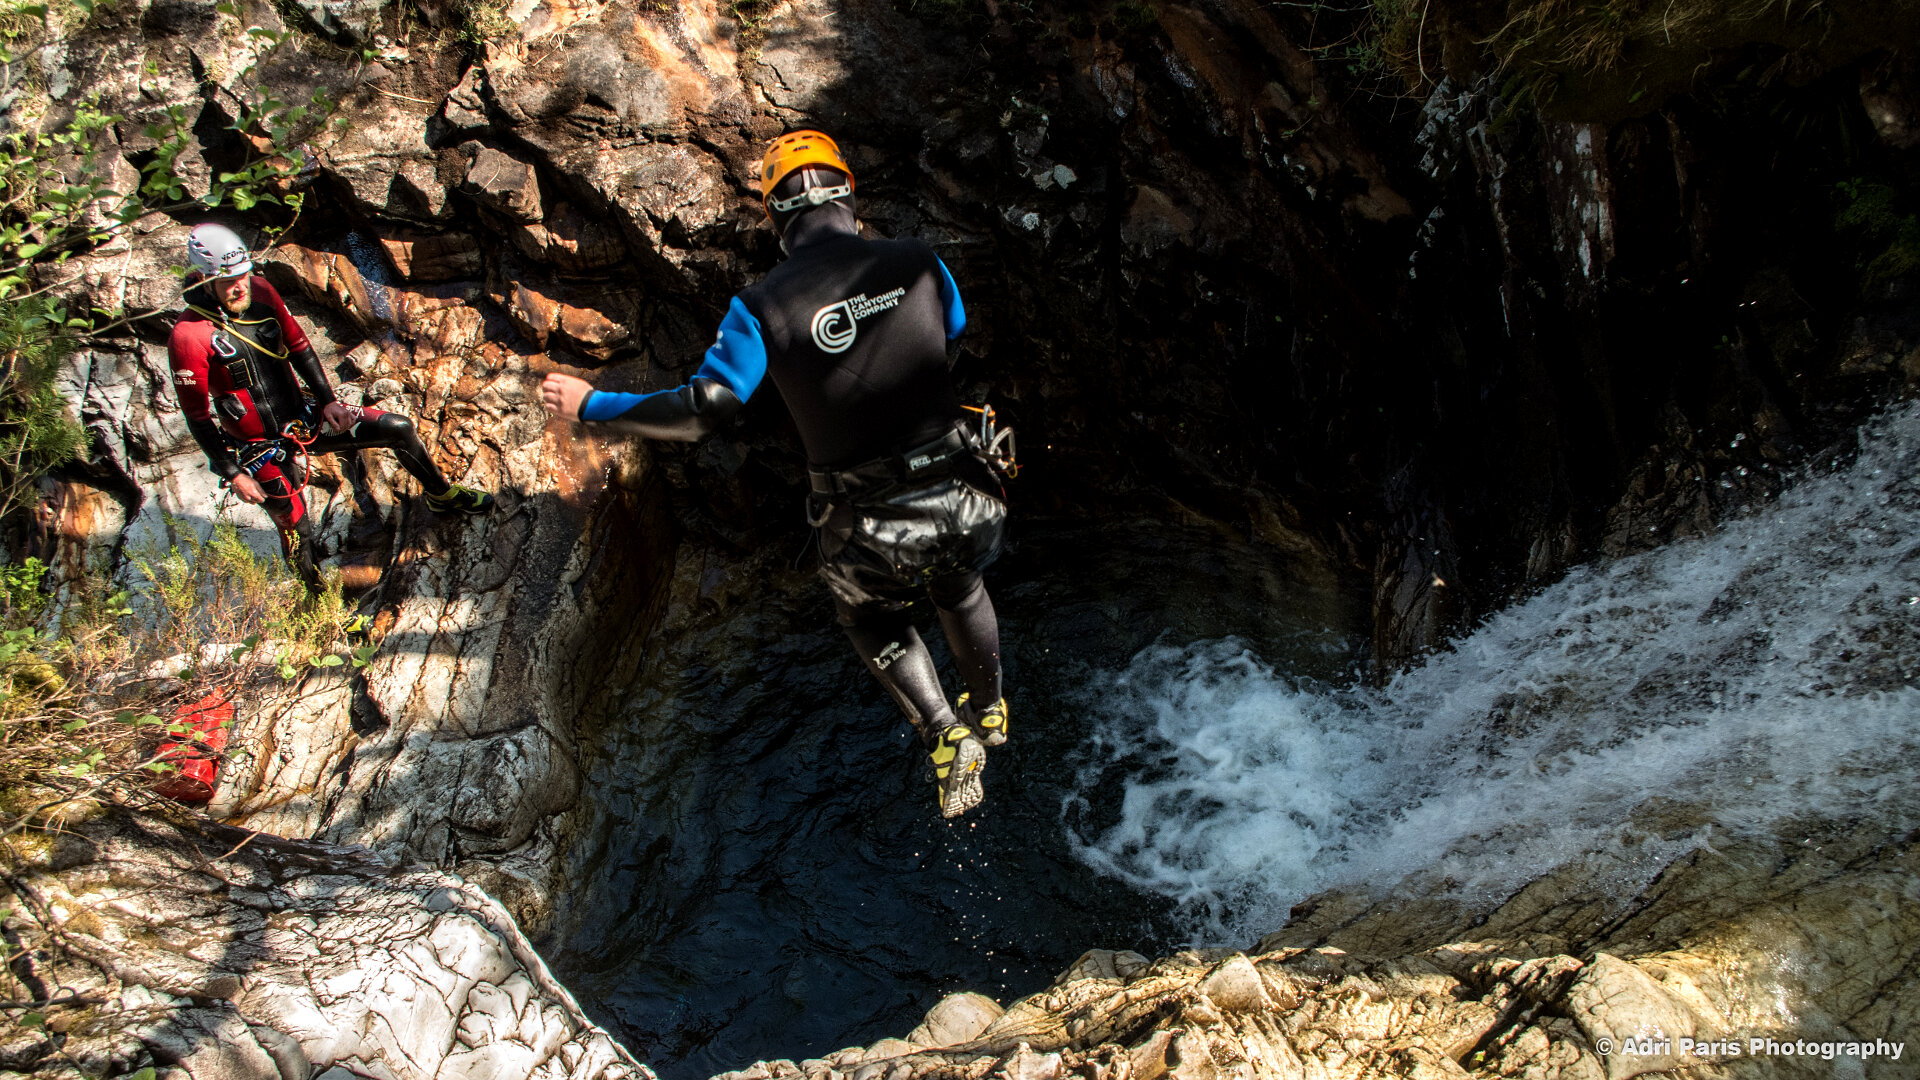 canyoneer jumping off cliff into water